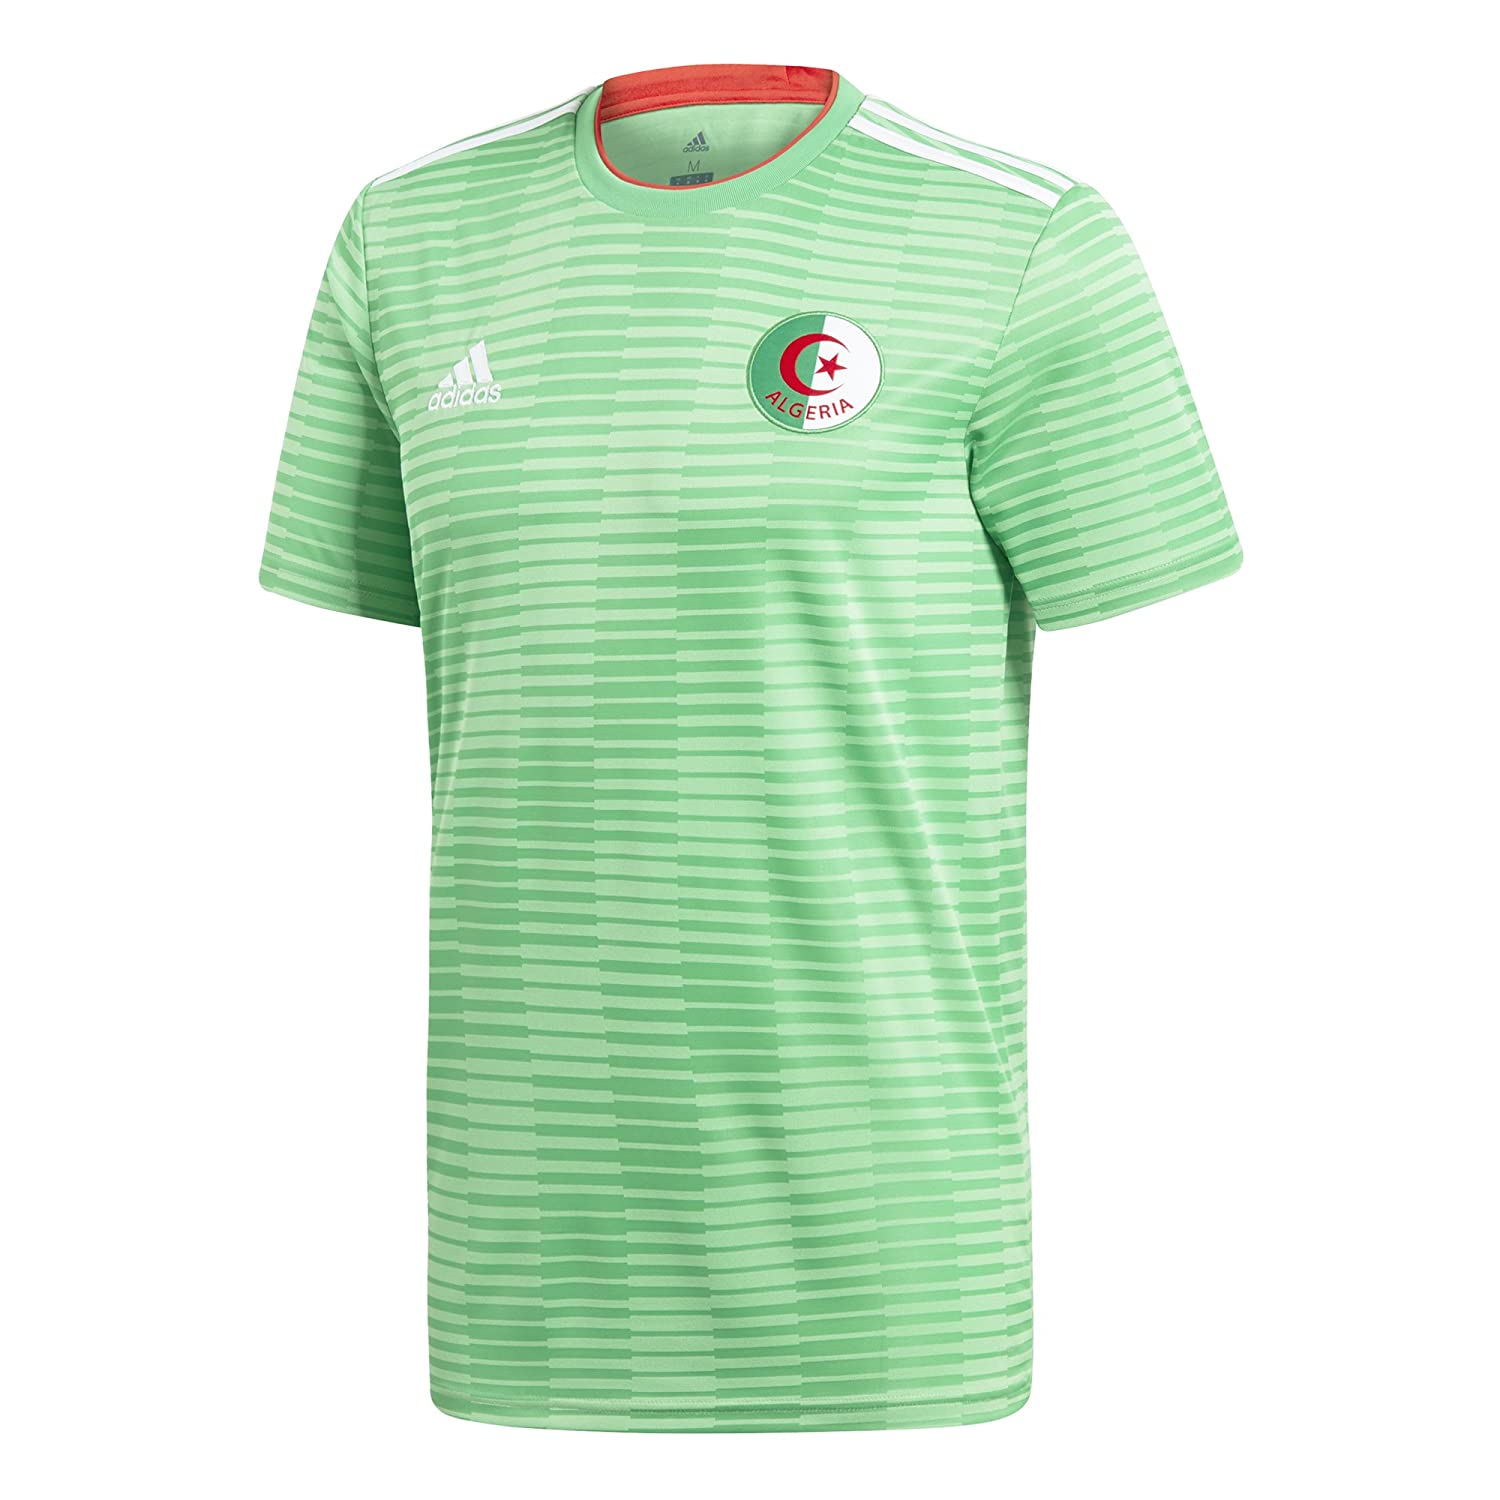 2018-2019 Algeria Away Adidas Football Shirt B0798VQFLF